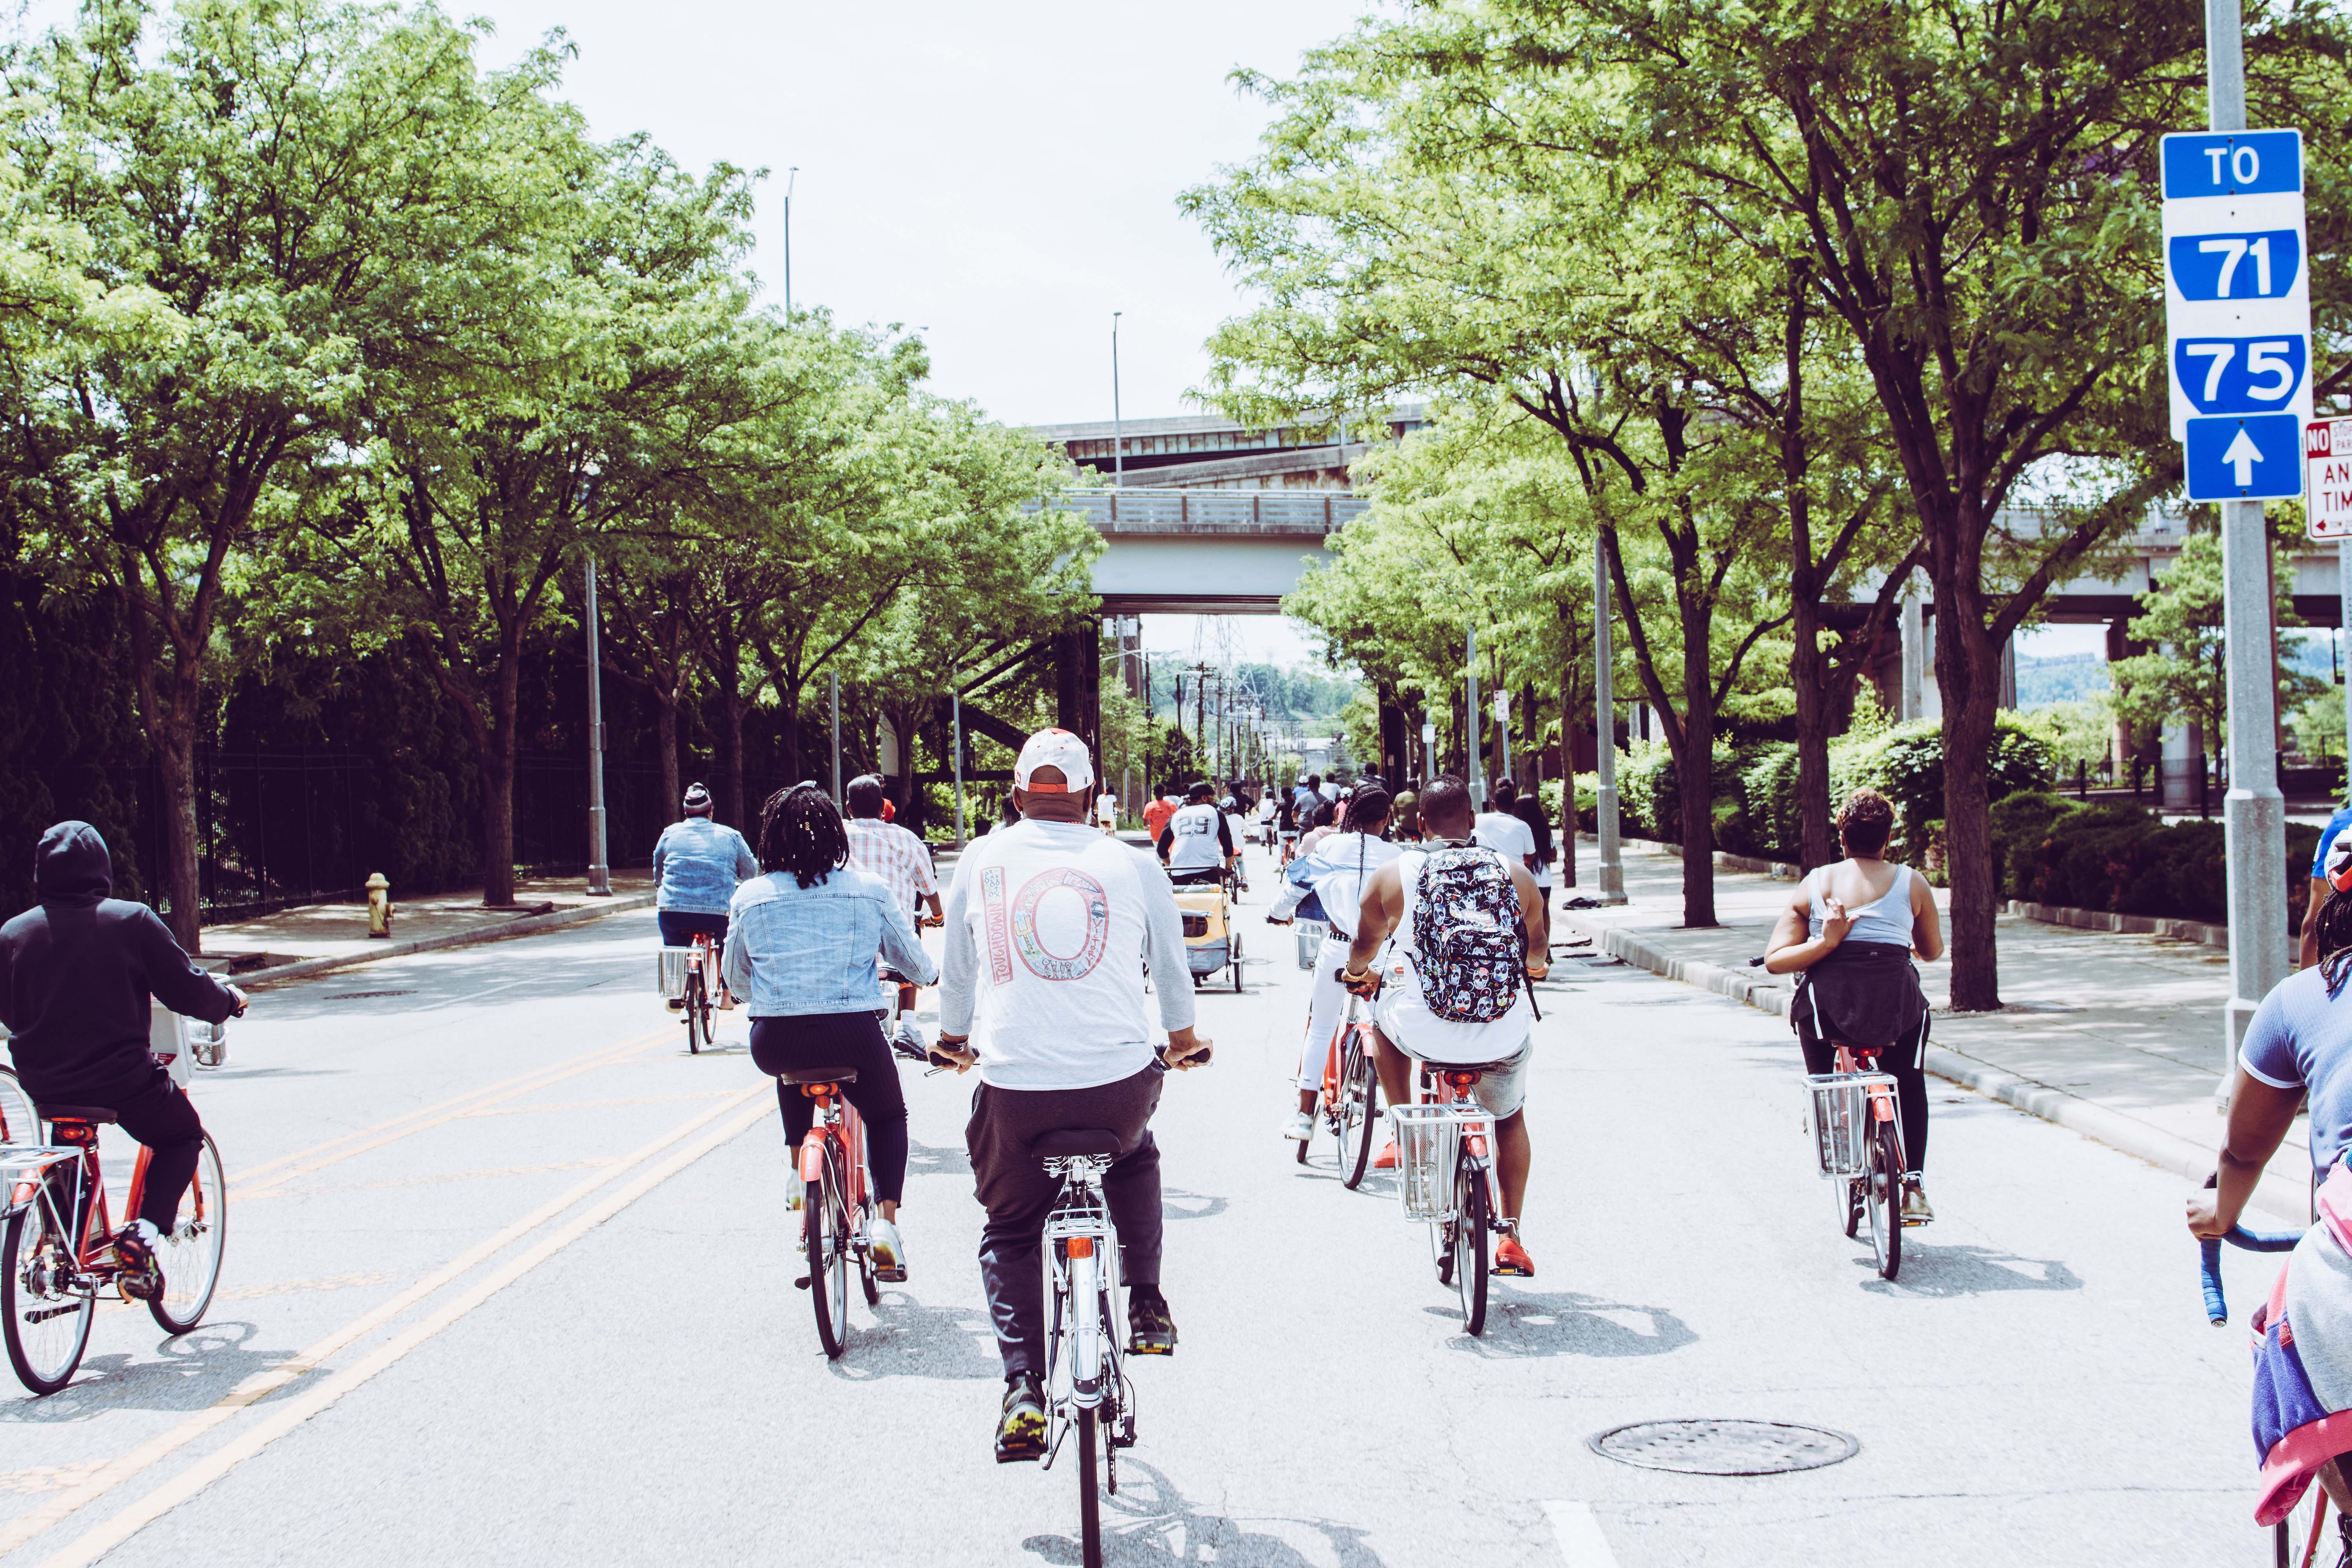 People Riding Bicycle on Concrete Road